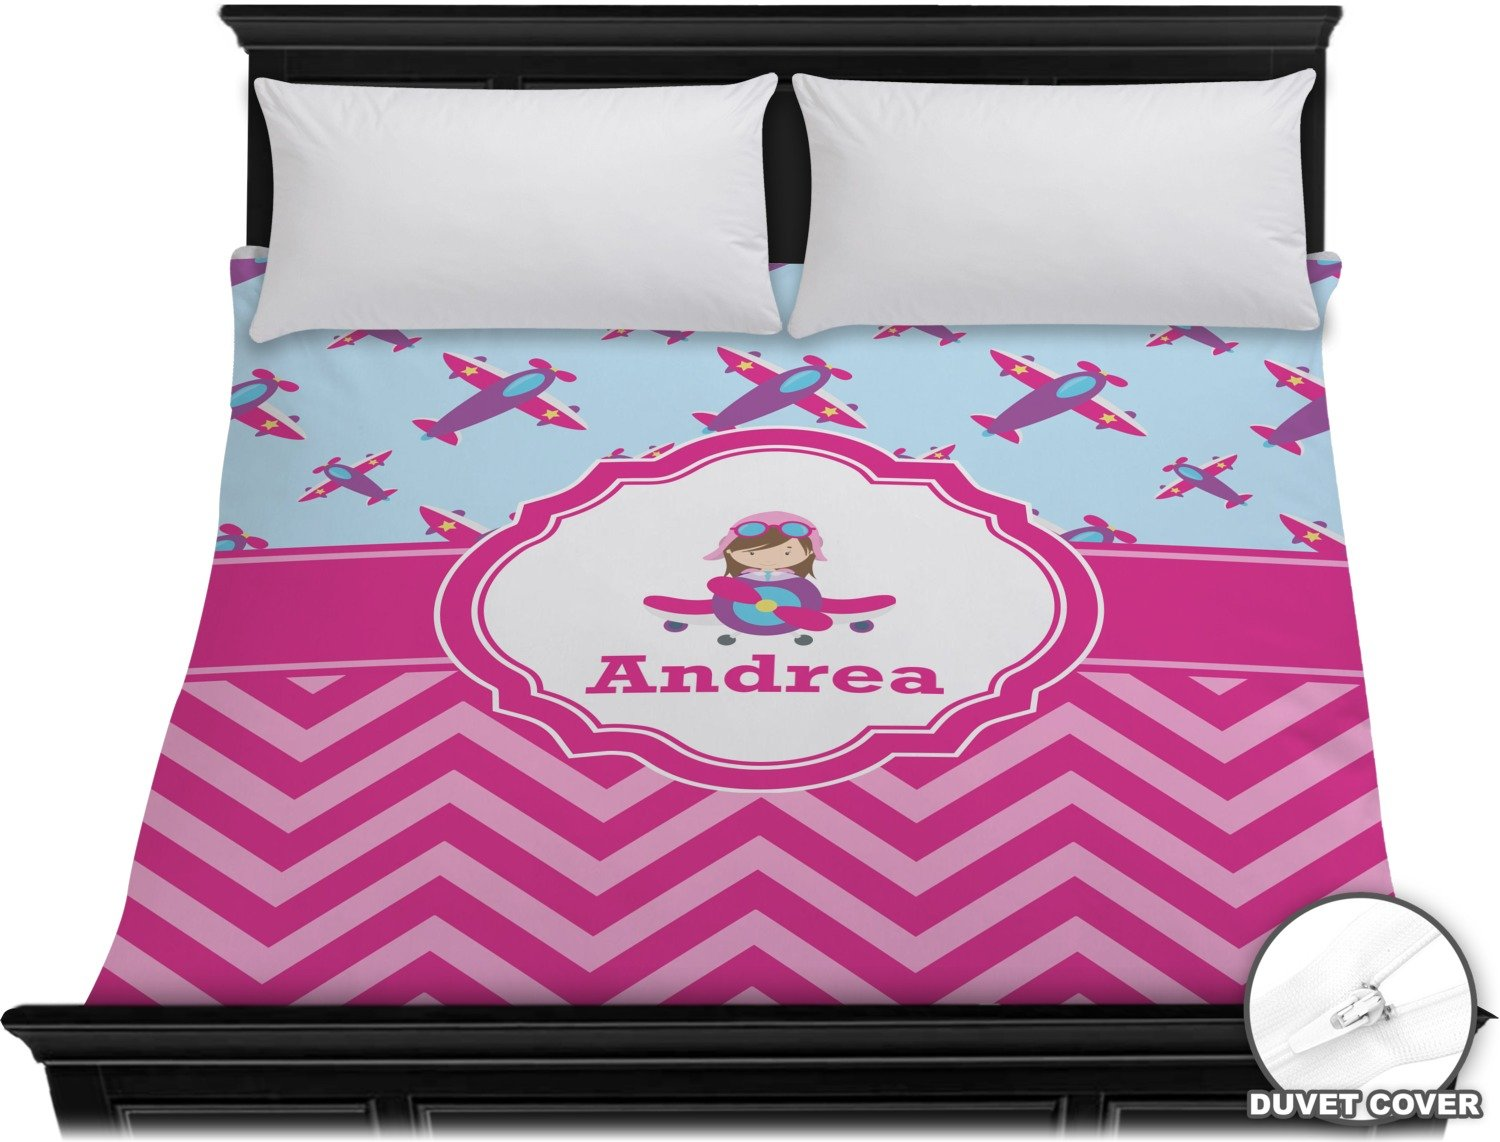 Airplane Theme - for Girls Duvet Cover - King (Personalized)